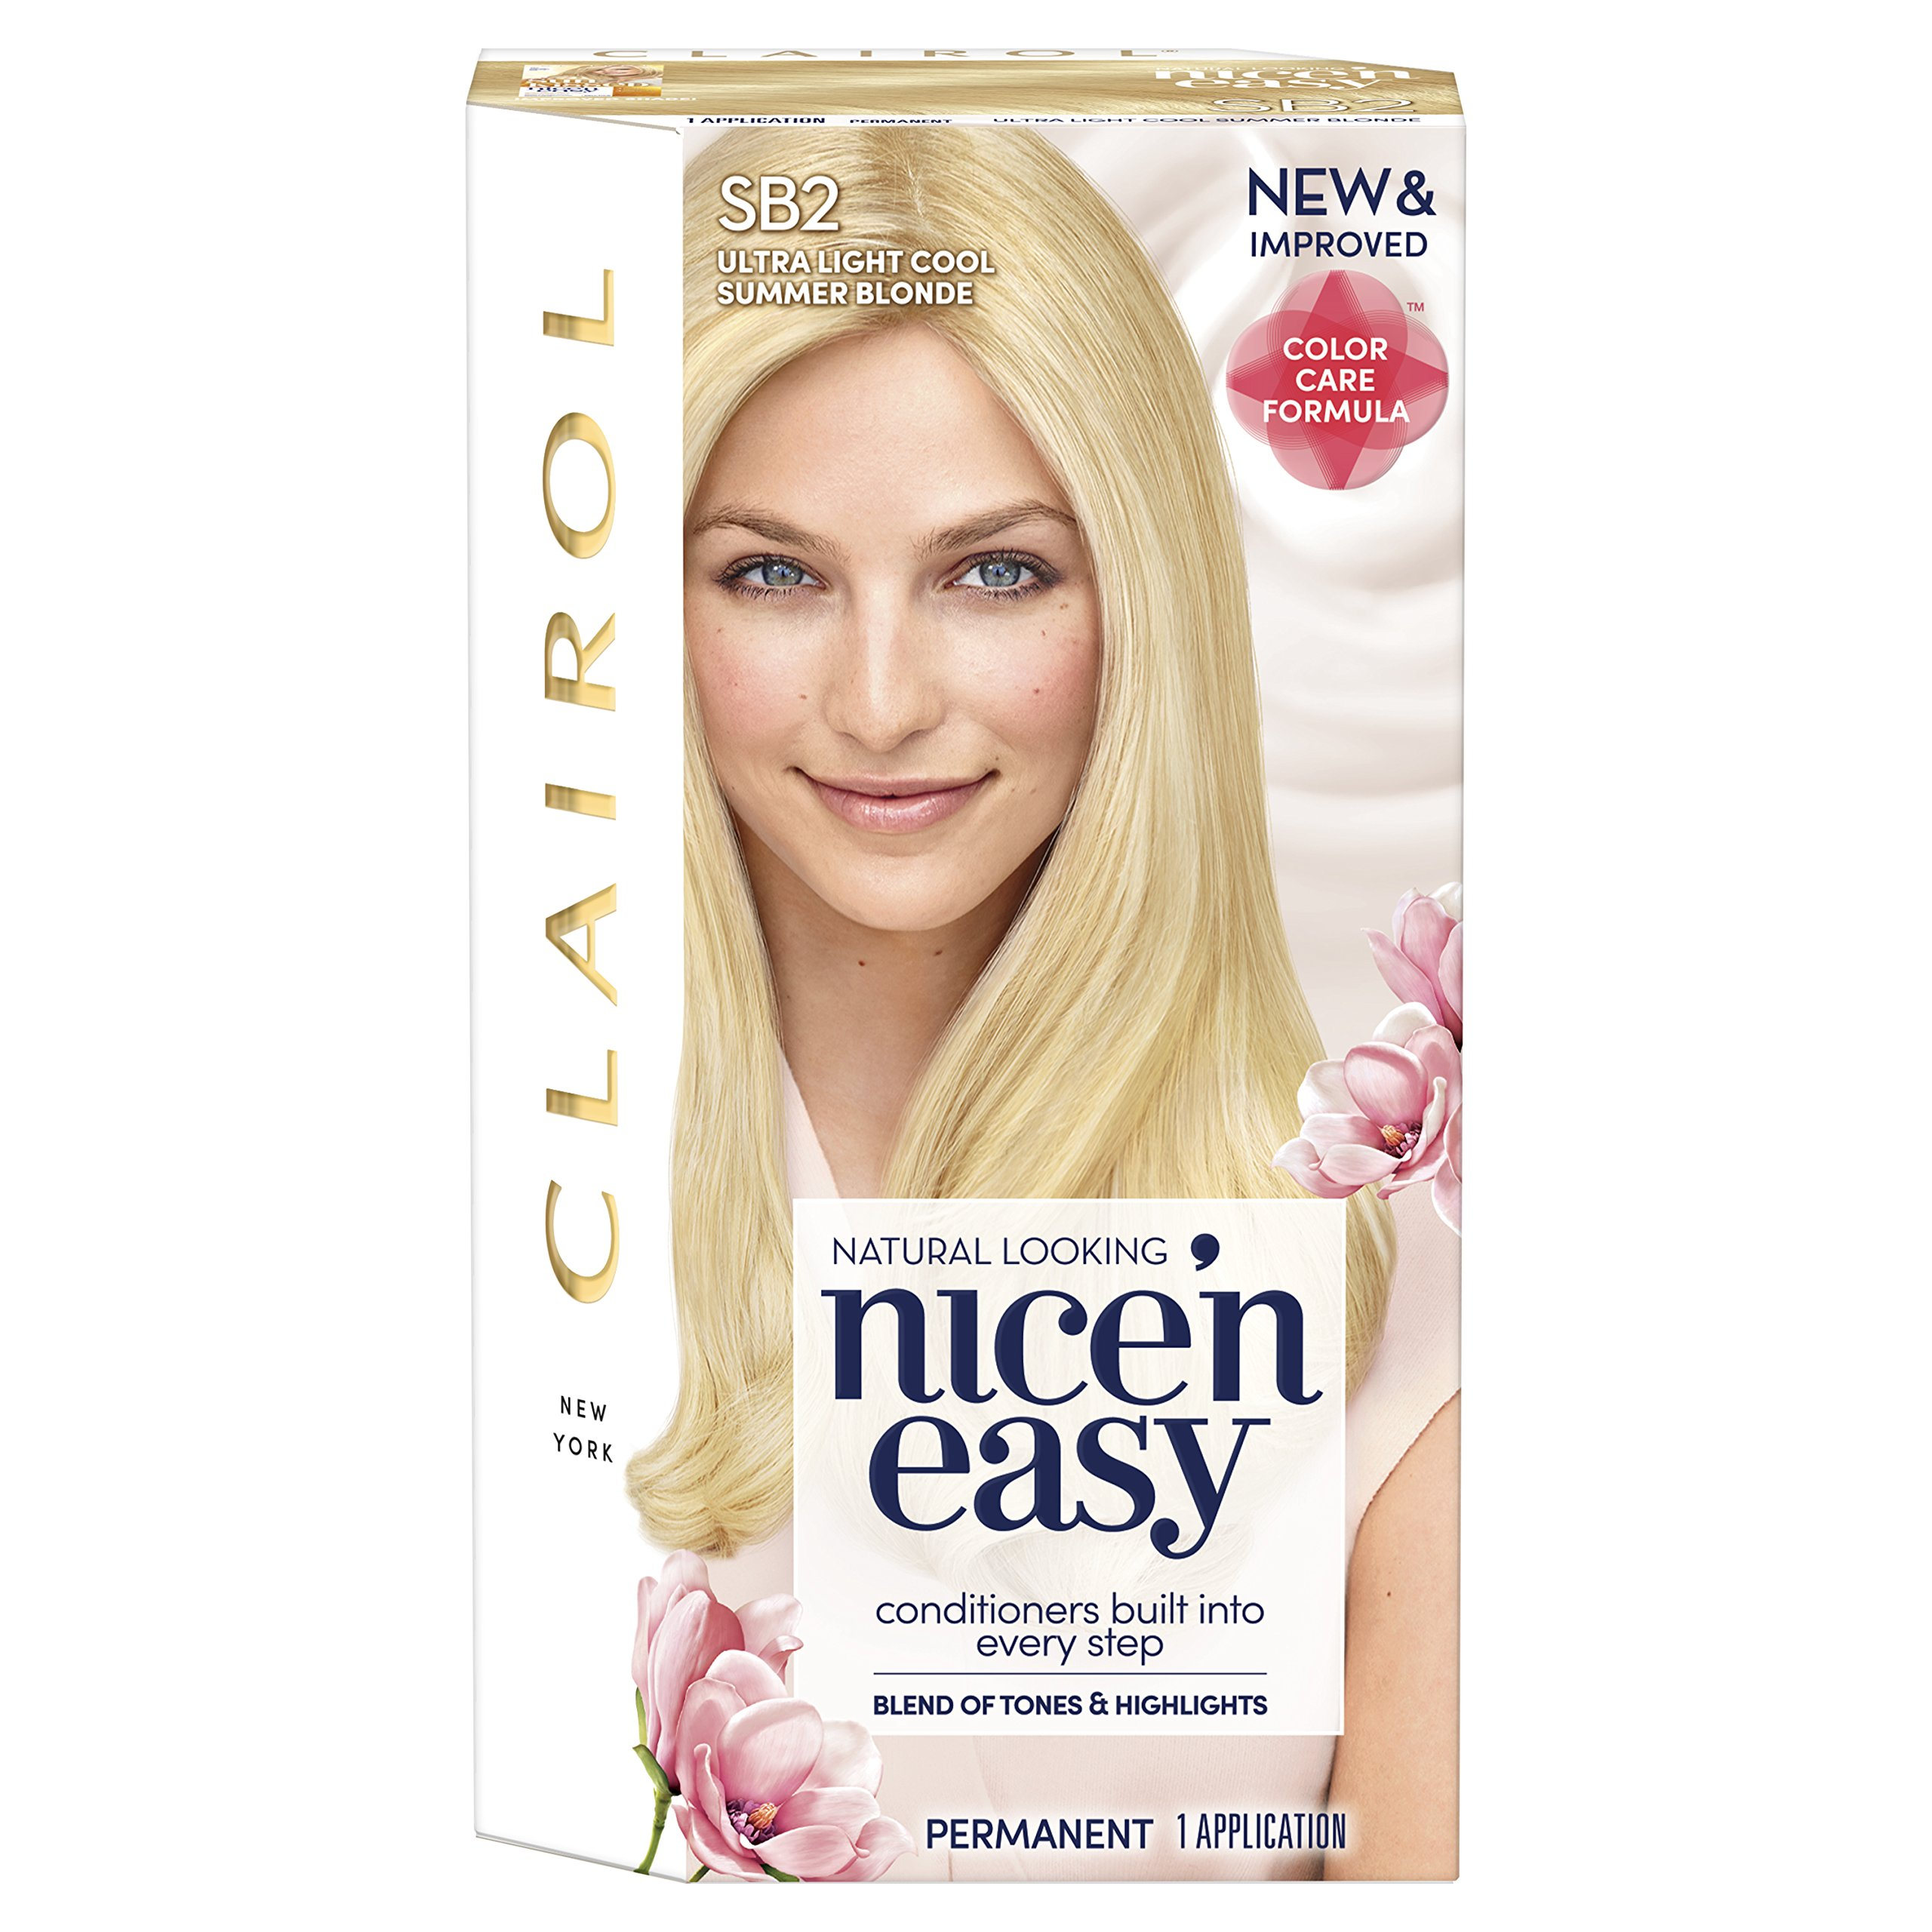 Clairol Nice'n Easy Permanent Hair Color, SB2 Ultra Light Cool Summer Blonde, Pack of 1